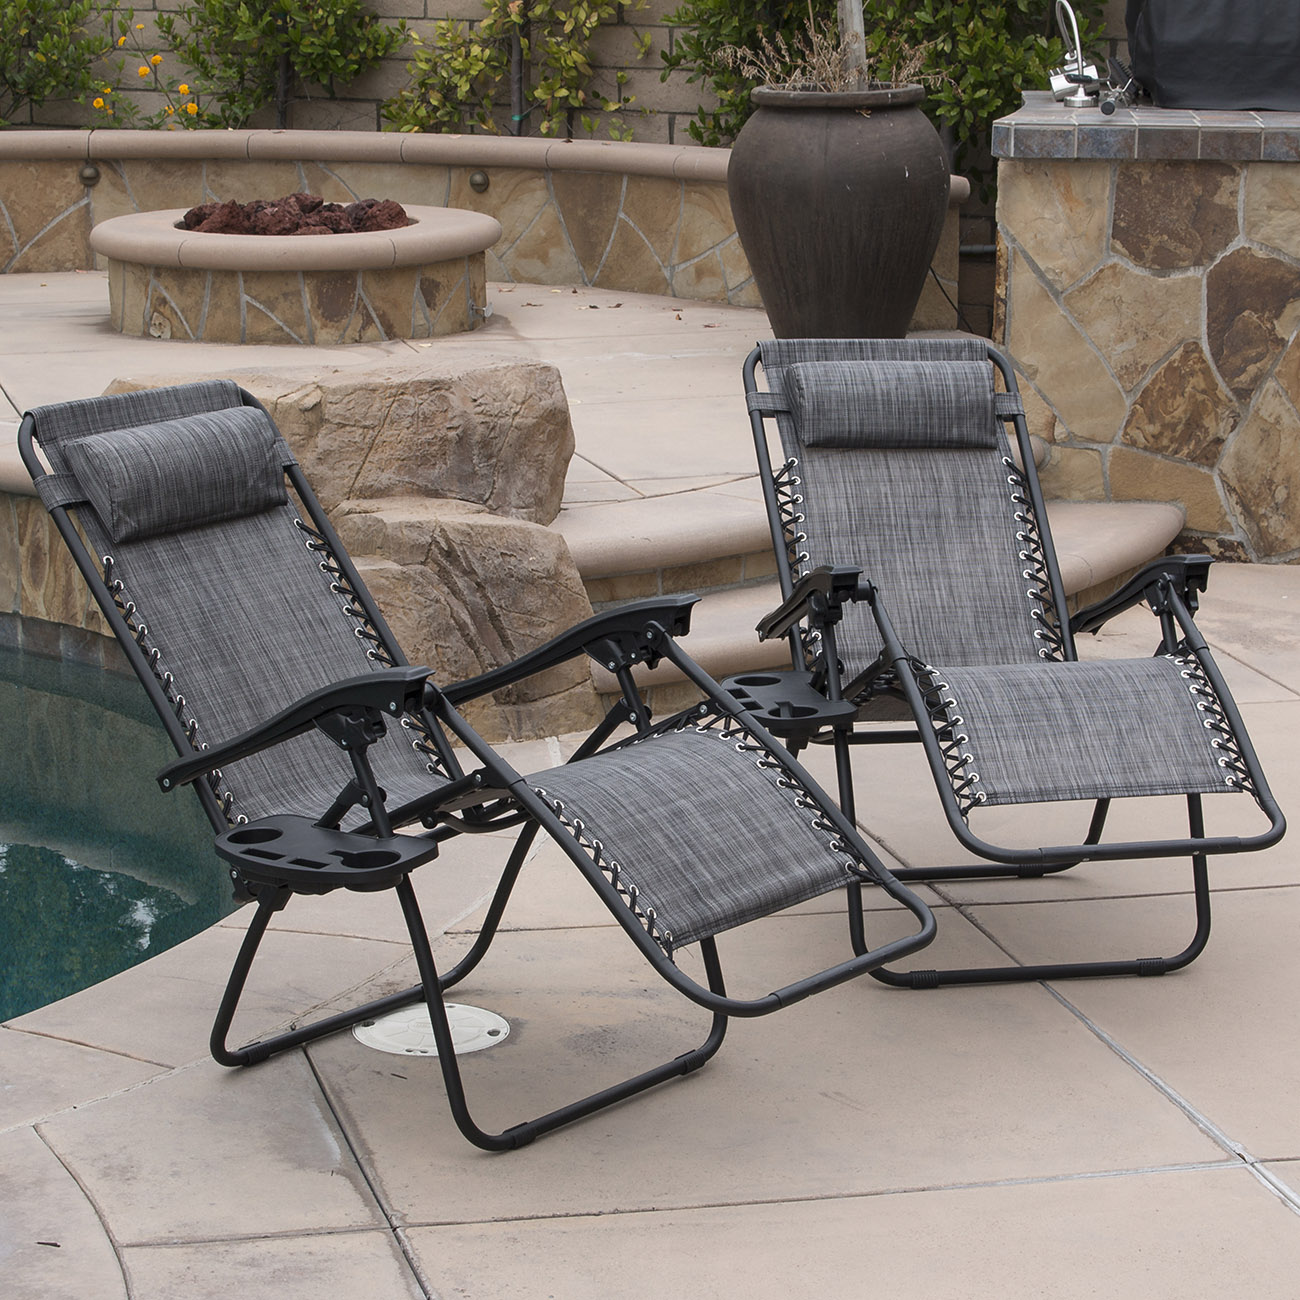 zero g garden chair computer gaming gravity chairs case of 2 lounge patio outdoor yard details about beach gray